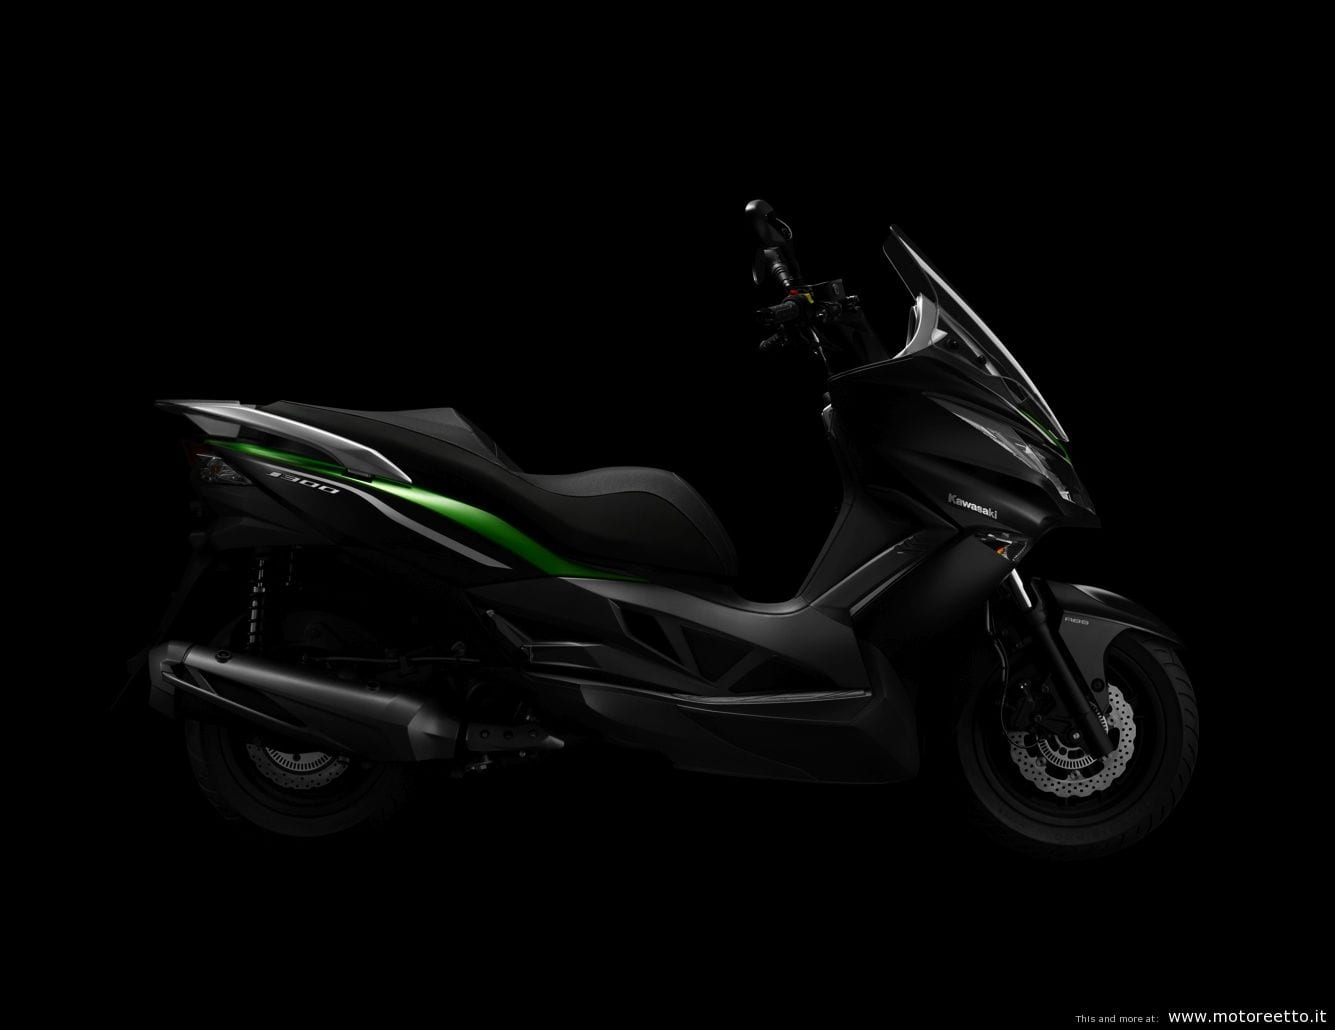 _small_kawasaki-pronta-a-lanciare-il-suo-primo-scooter-in-europa-bike-only-_-right-side